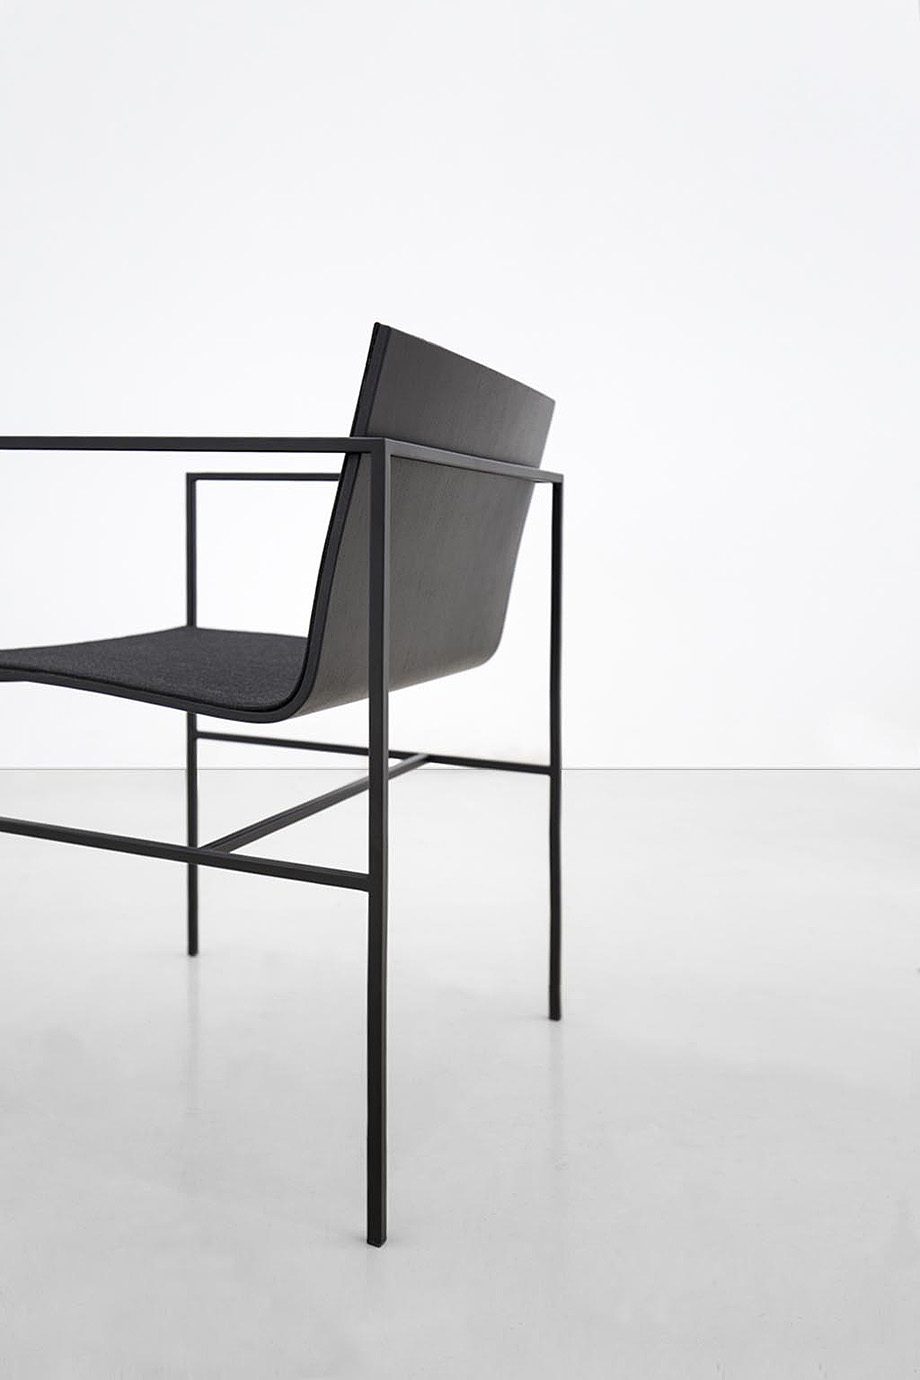 silla a-collection de fran silvestre y capdell (5)